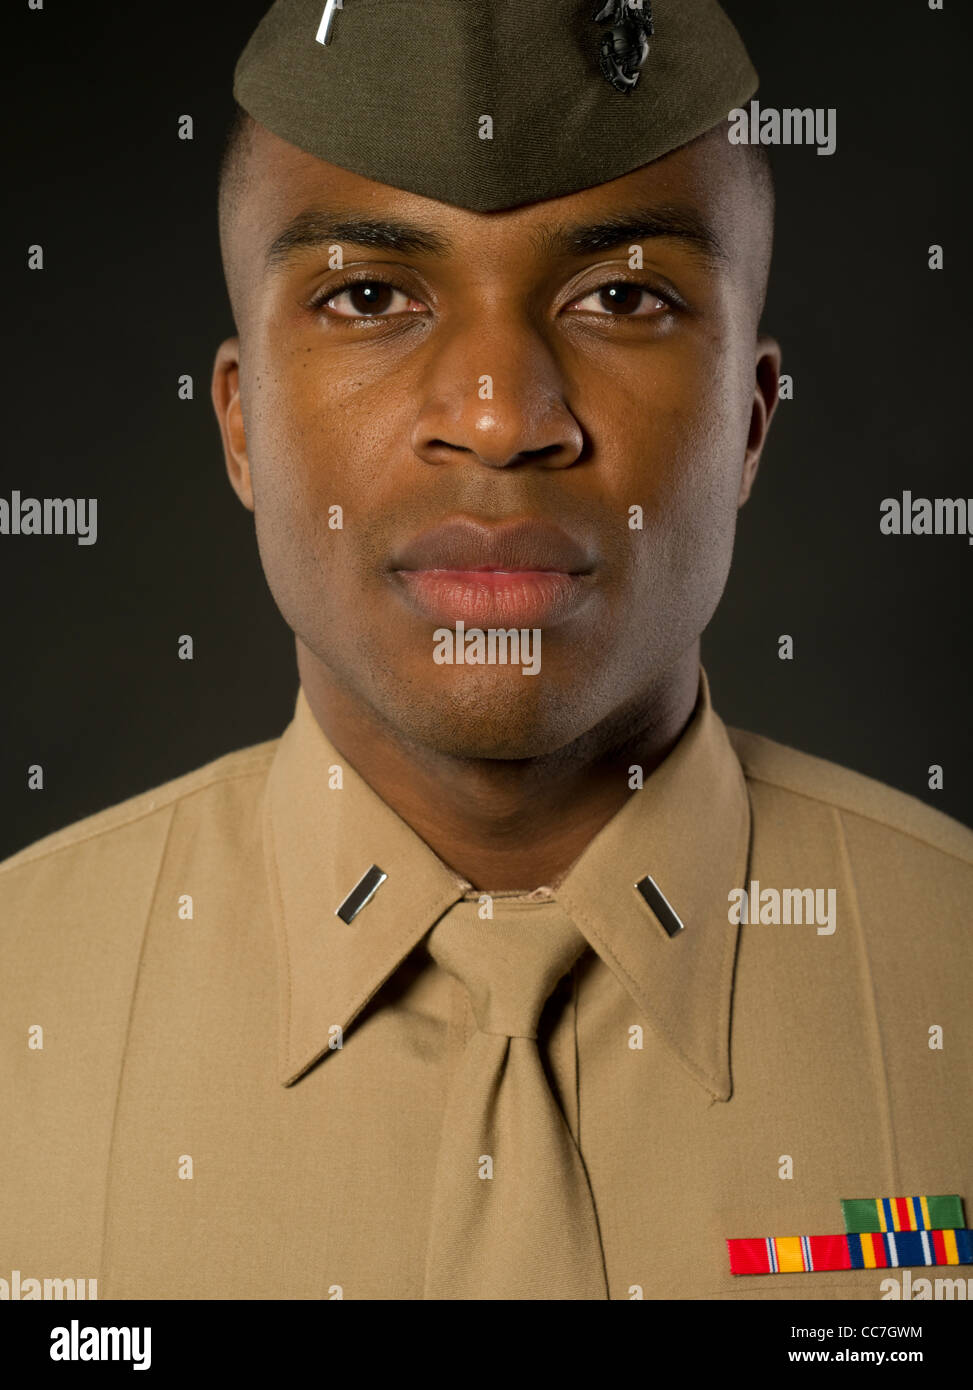 united states marine corps officer in service b   bravos